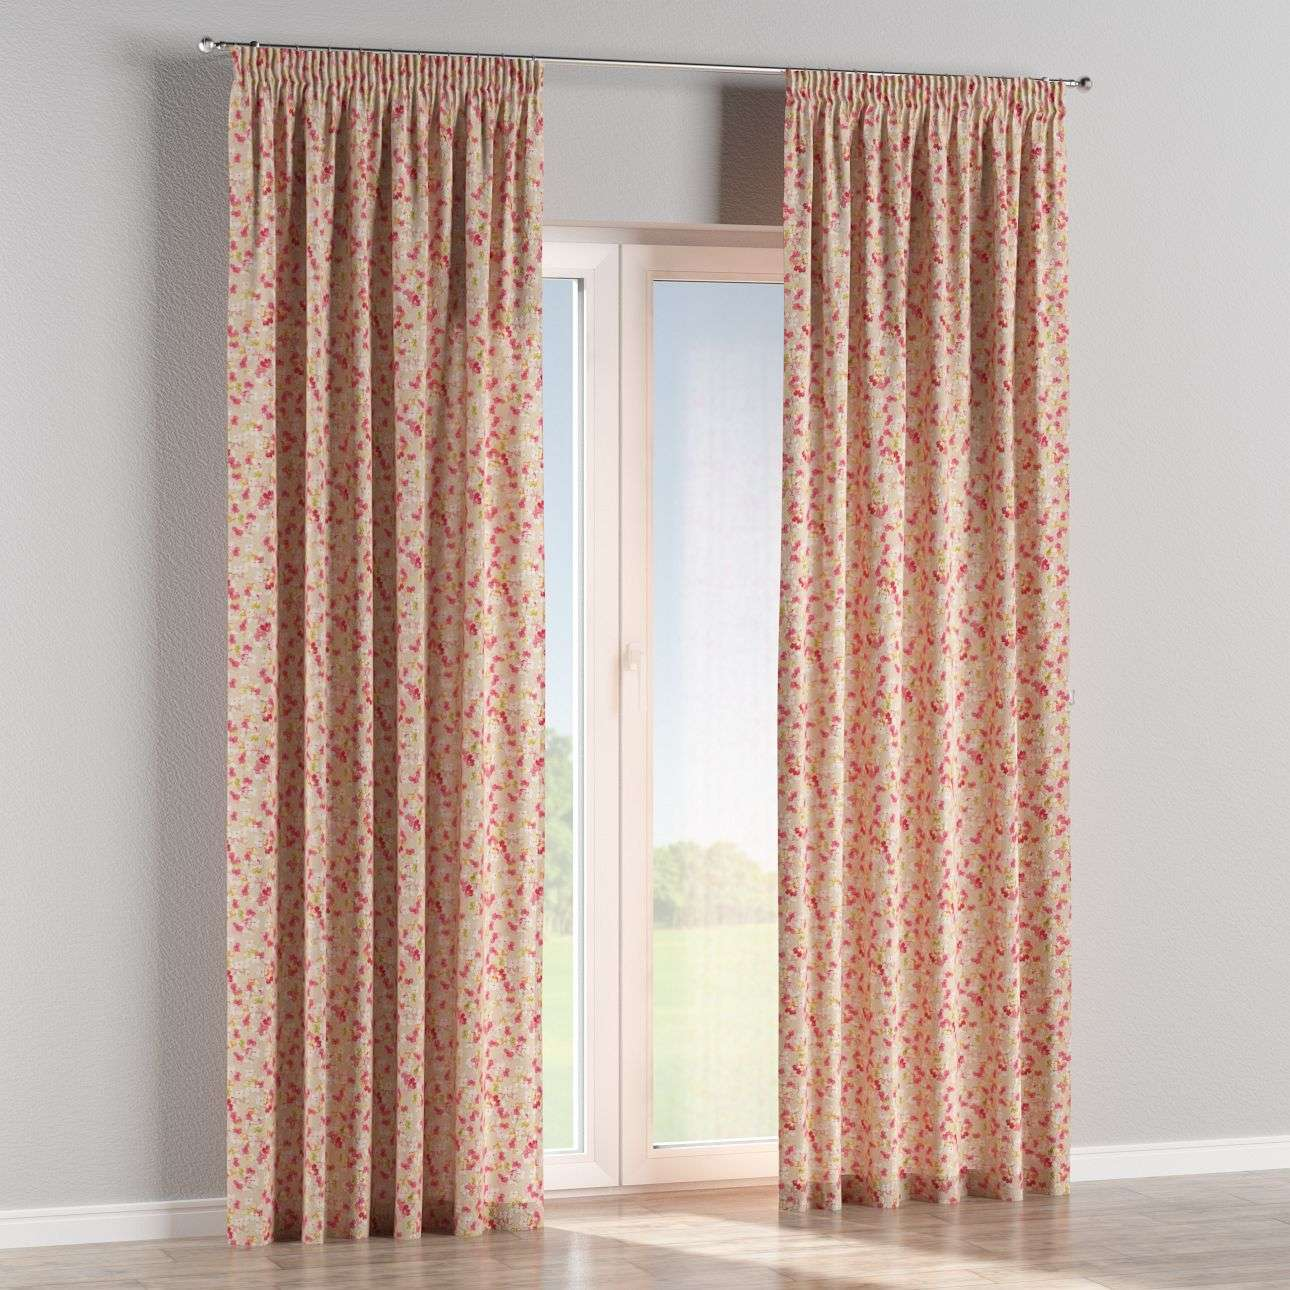 Pencil pleat curtains 130 × 260 cm (51 × 102 inch) in collection Londres, fabric: 140-47